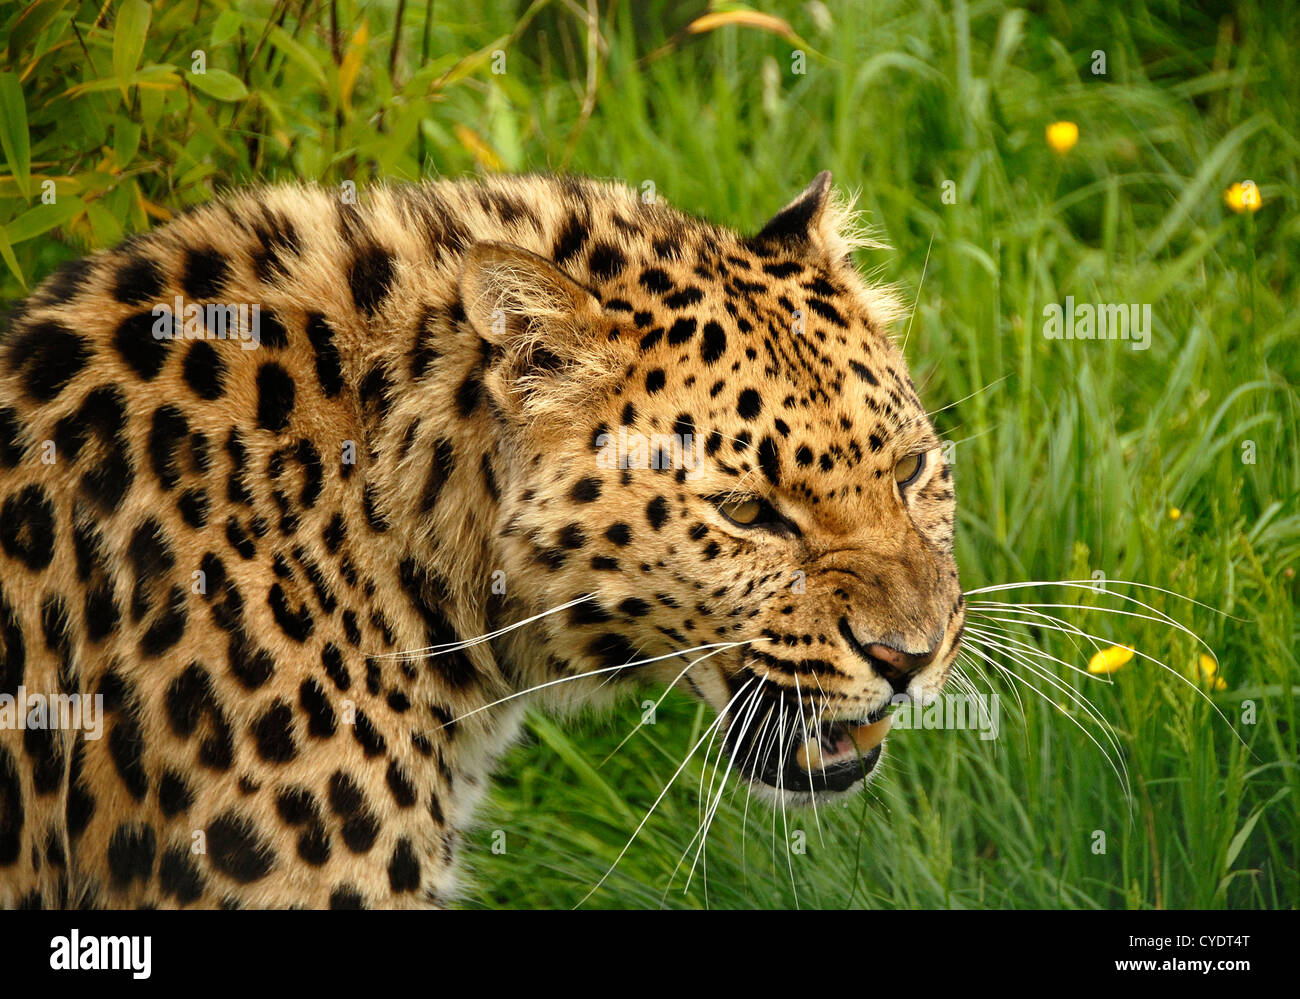 Amur Leopard close up snarling - Stock Image